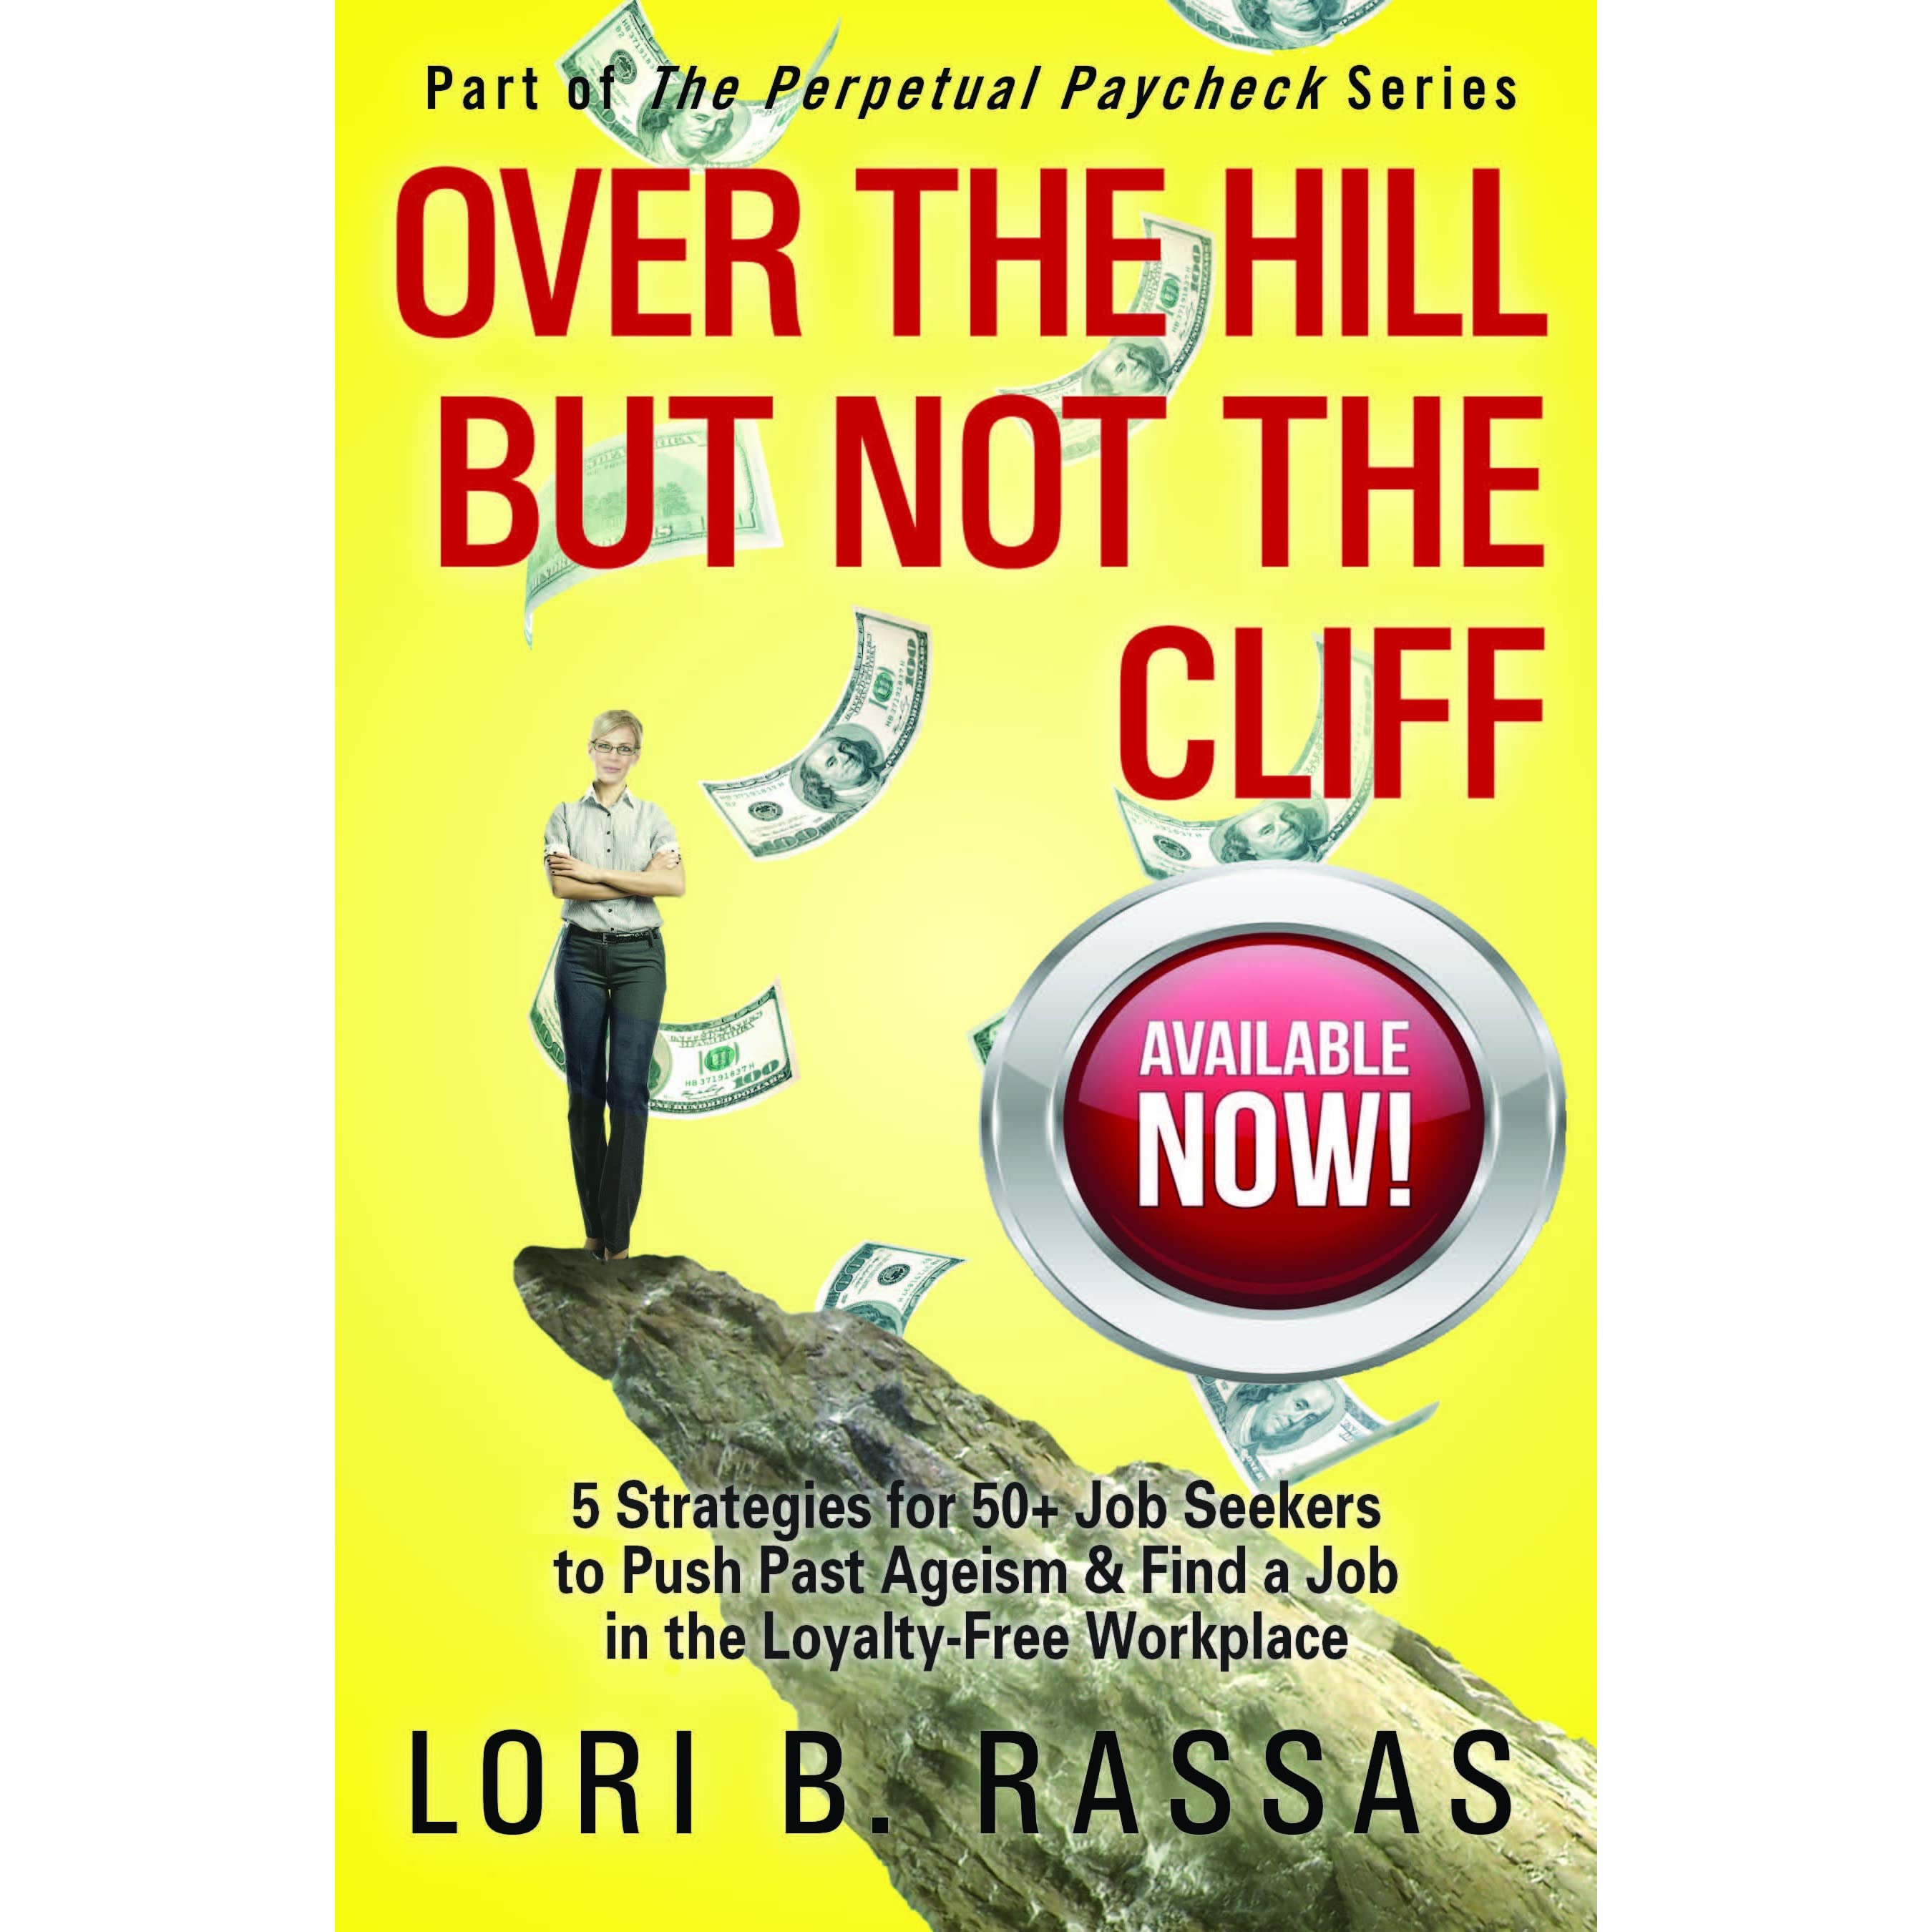 Book giveaway for Over the Hill But Not the Cliff: 5 Strategies for 50+ Job Seekers to Push Past ...